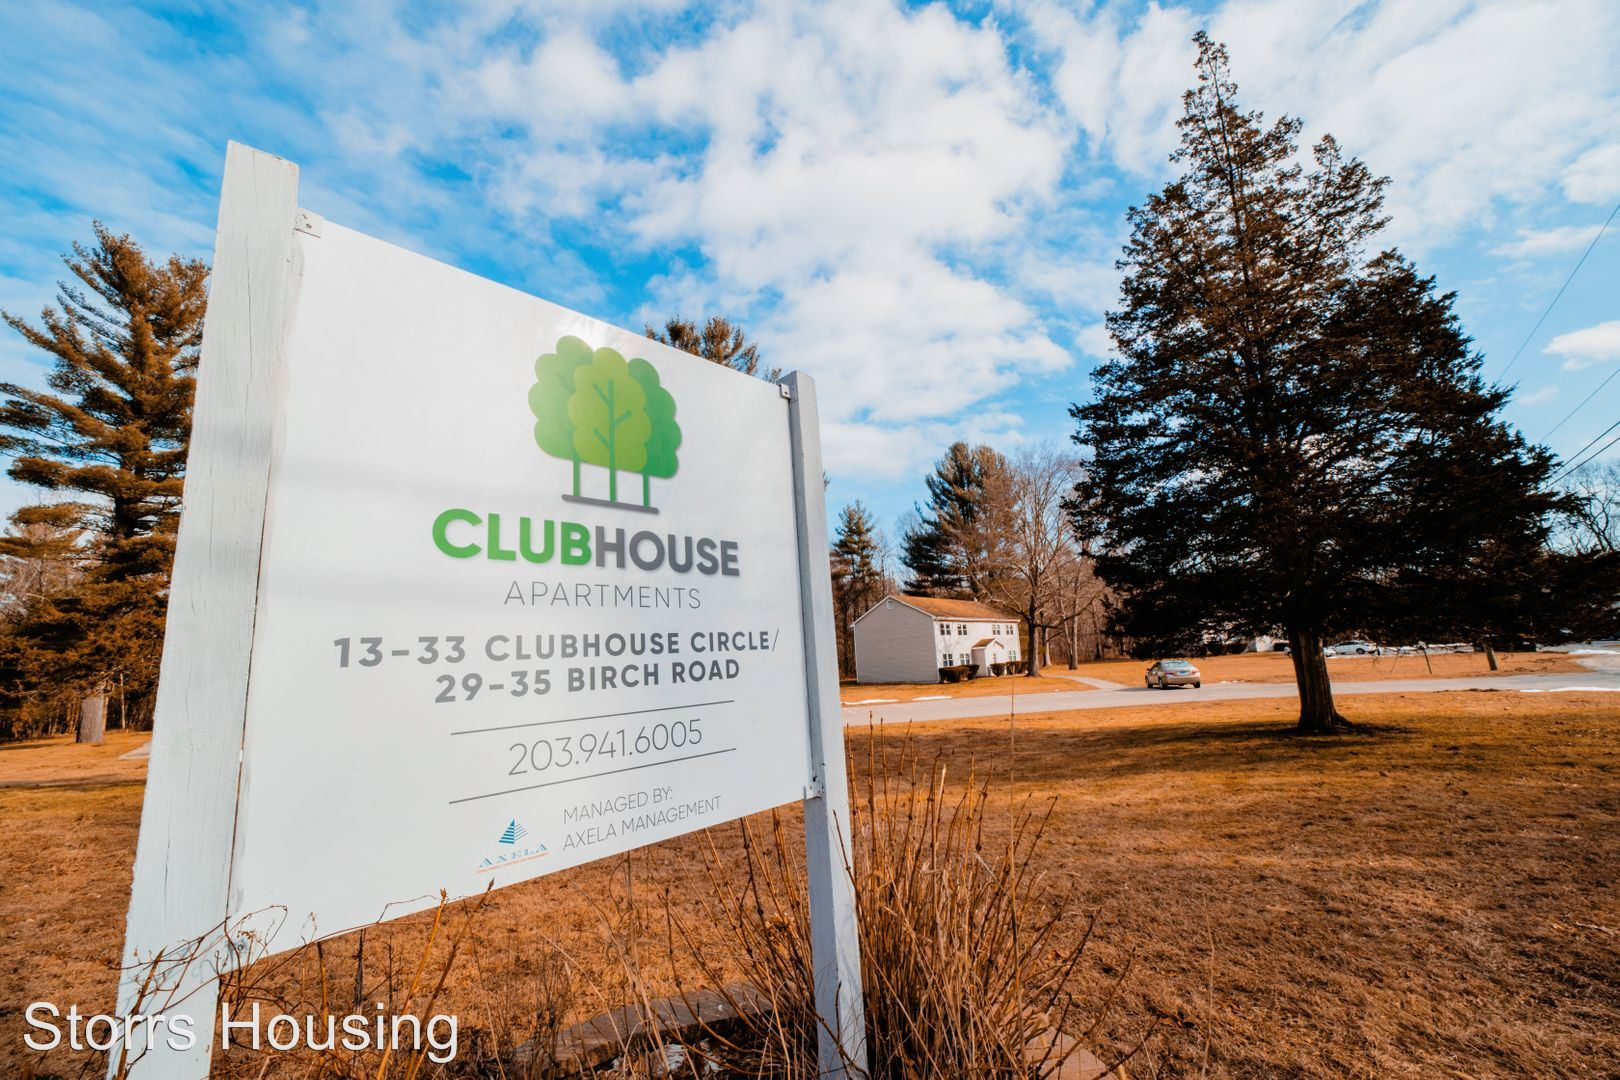 13-33 Clubhouse Circle/29-39 Birch Road